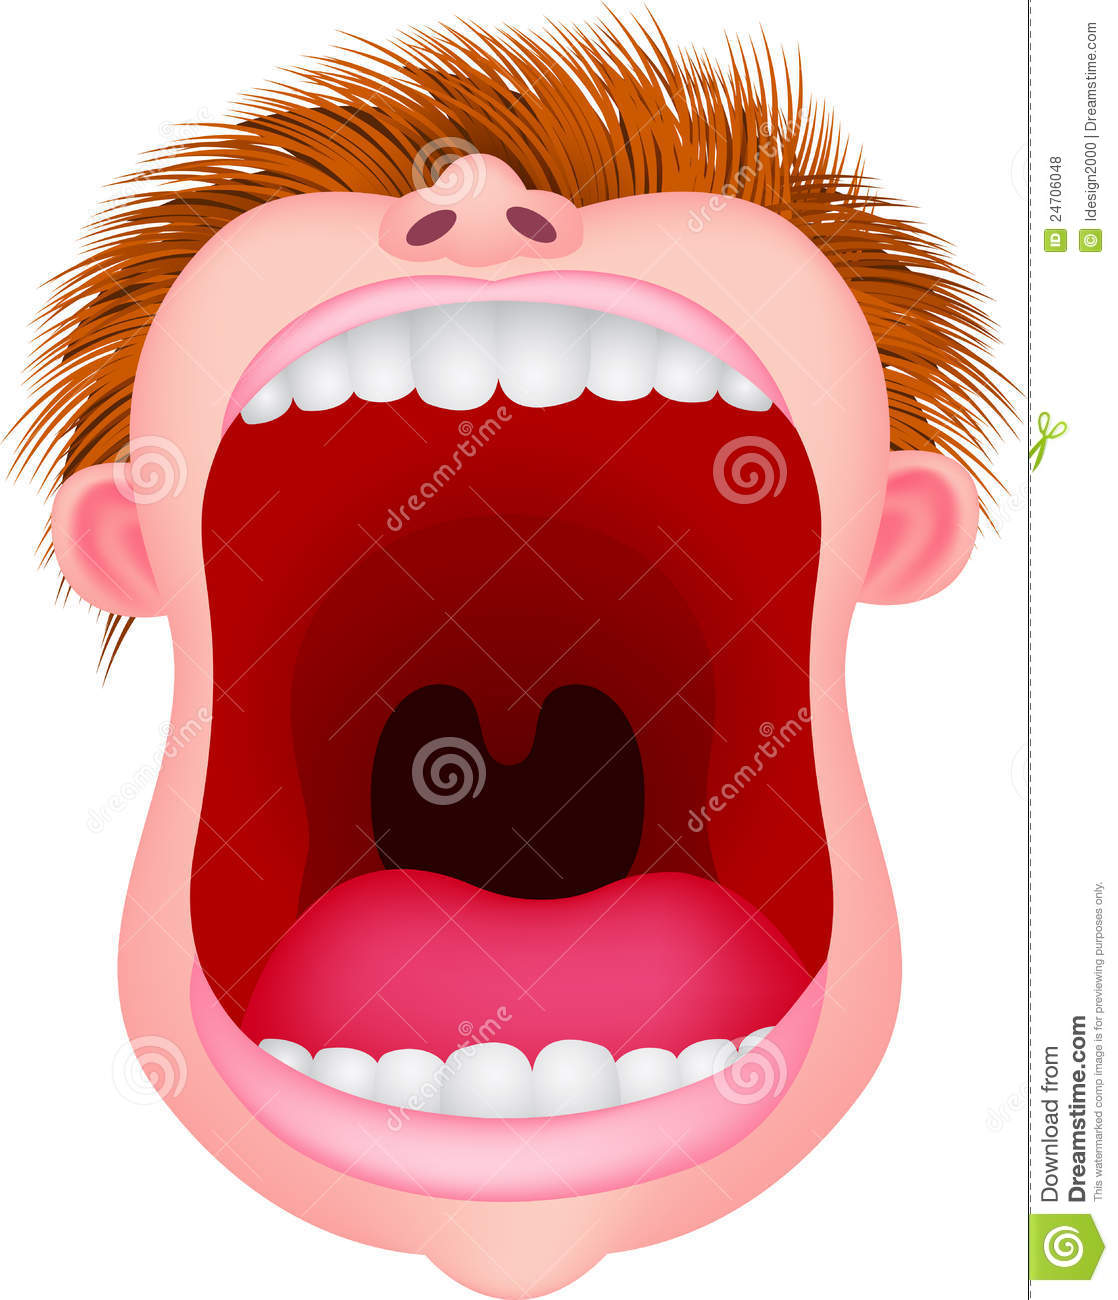 royalty free stock photos open mouth image 24706048 Devil Frog Frog Meme Screaming